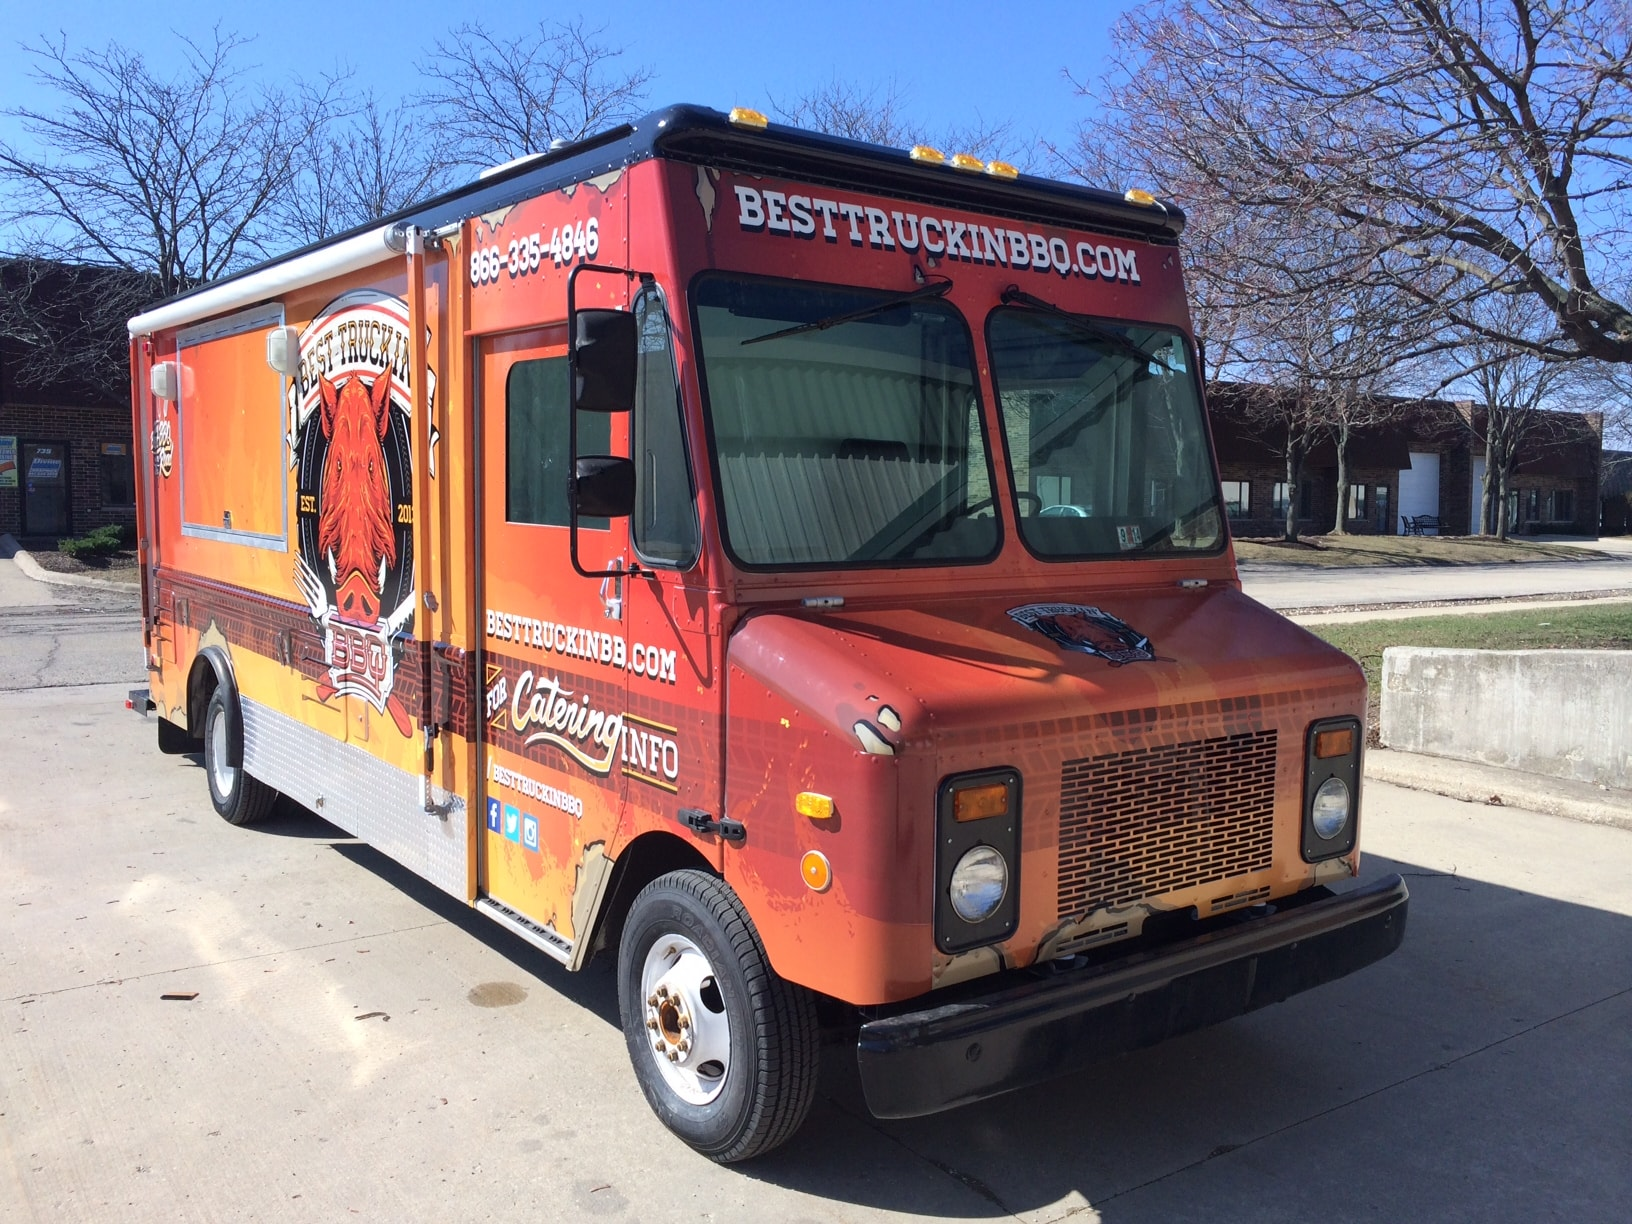 Best Truck in BBQ Truck Wrap